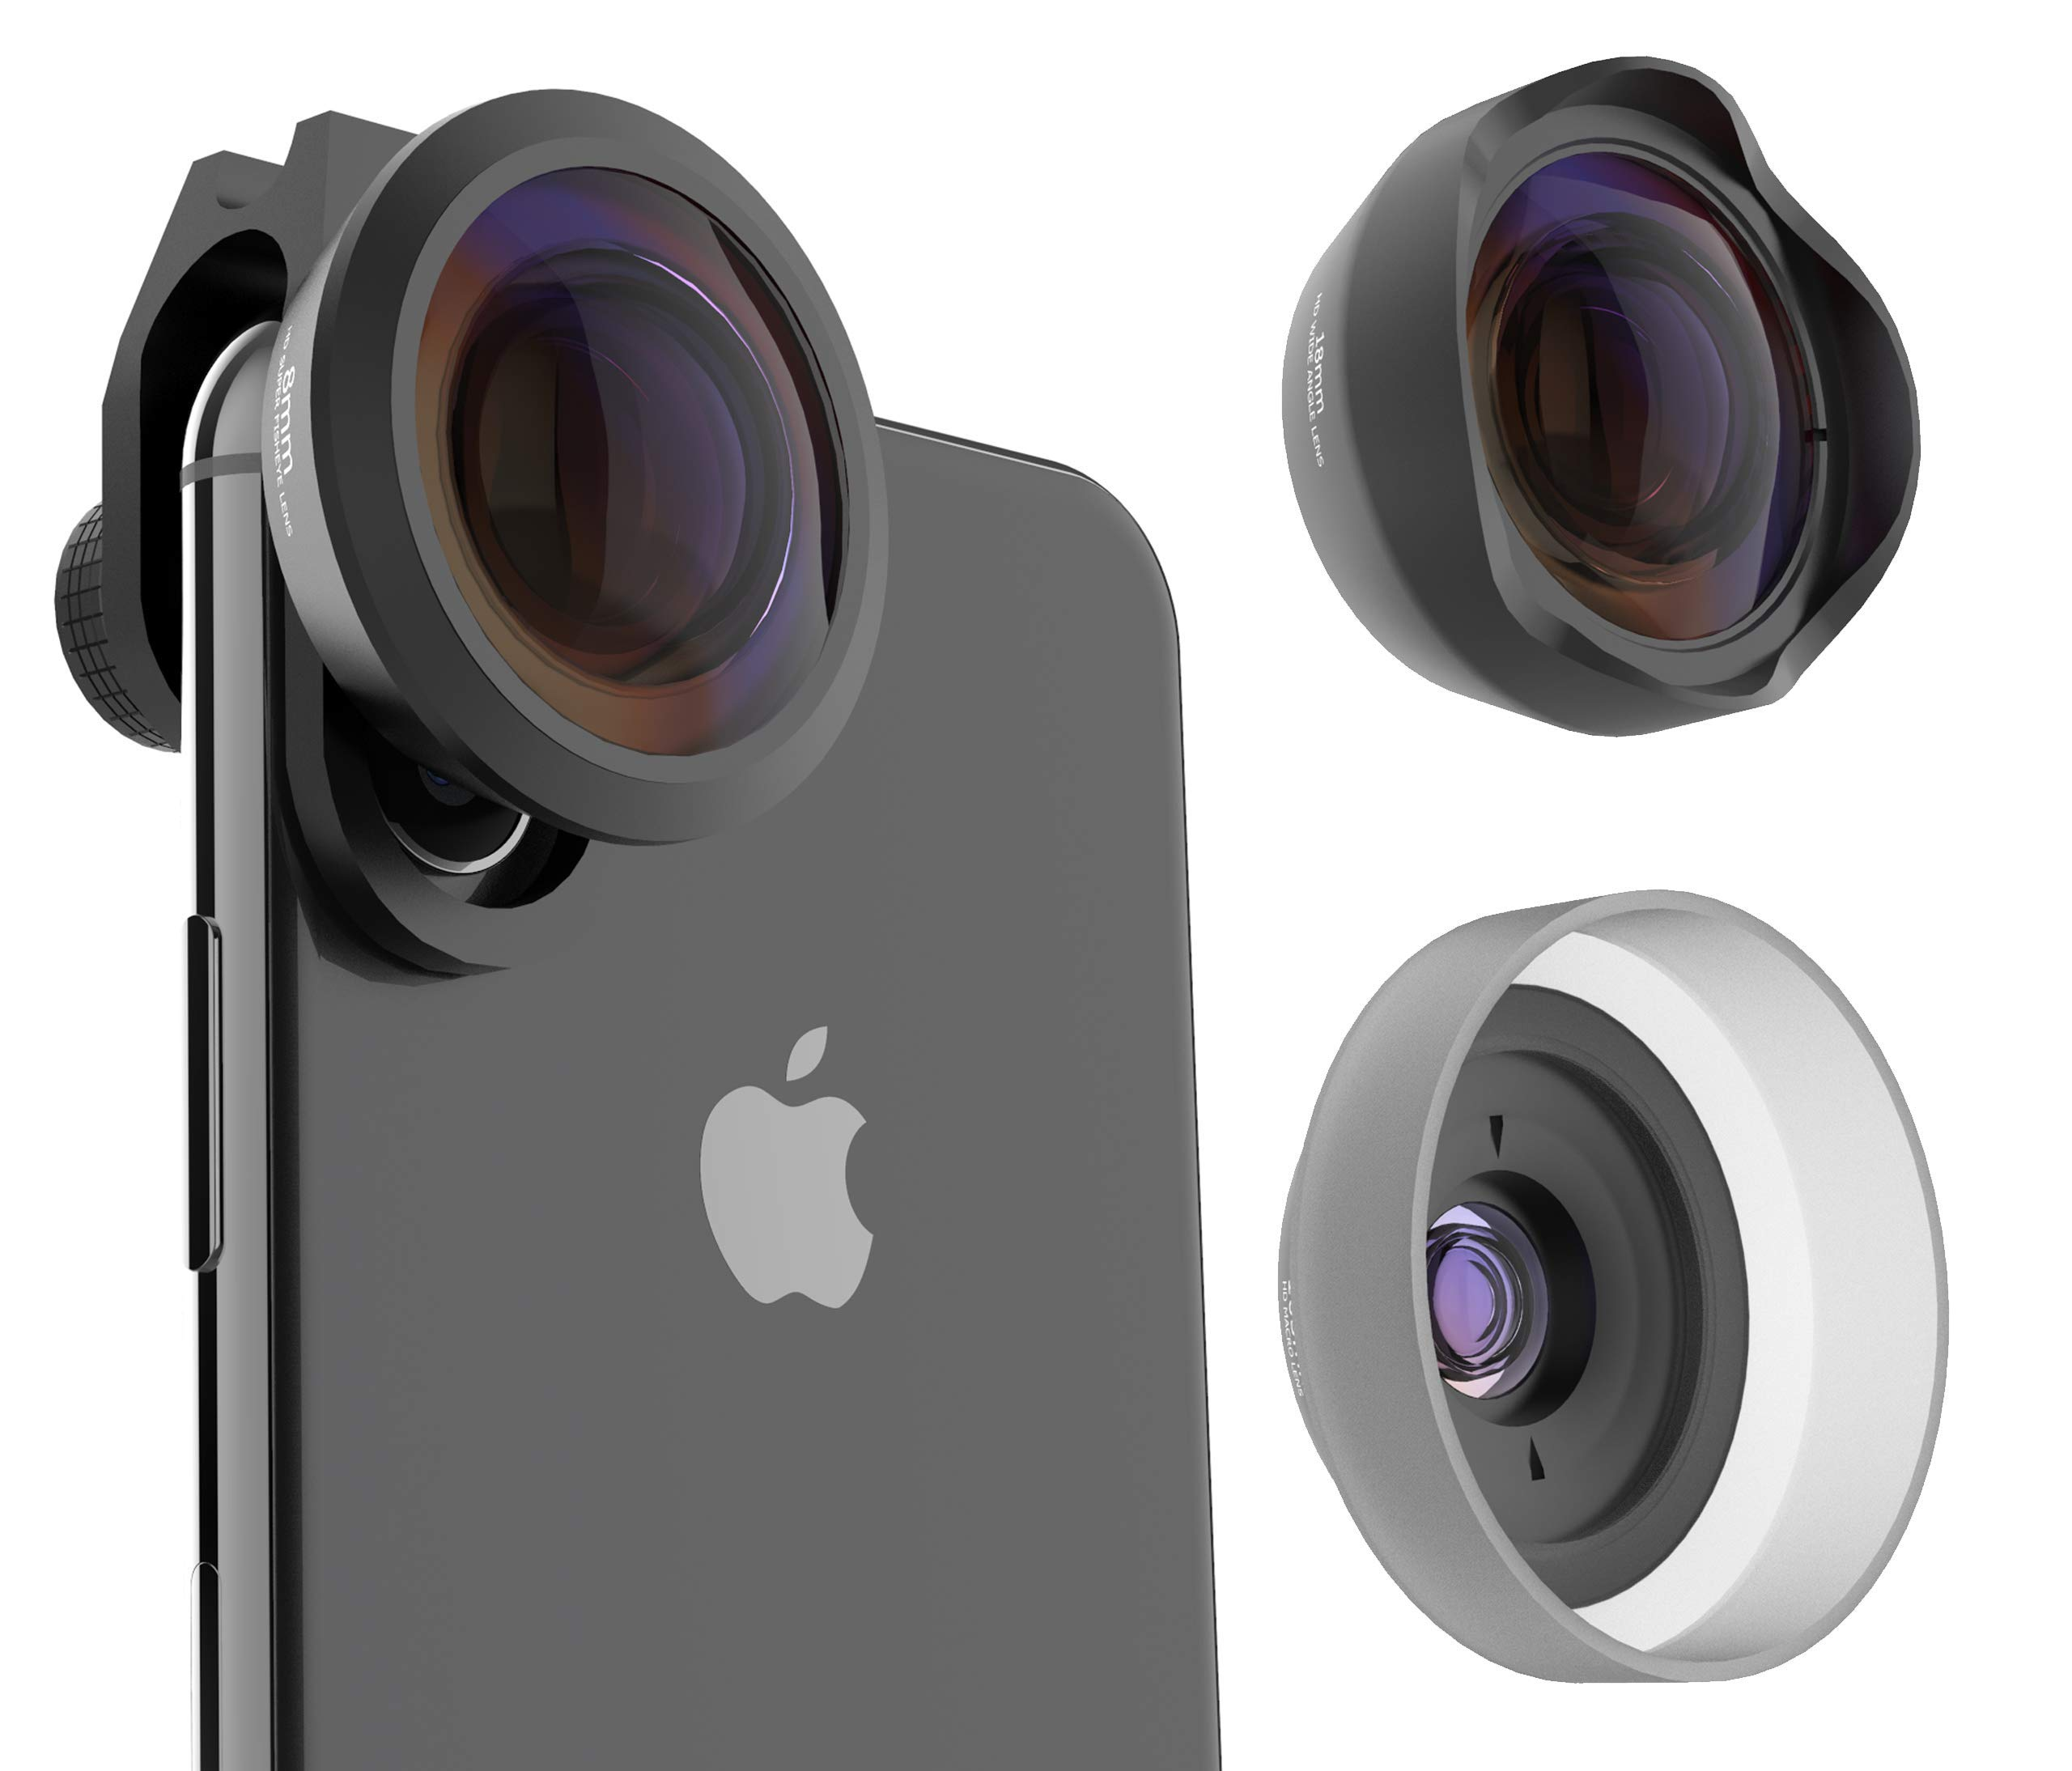 Phone Camera Lens Kit by PuzzleK, Upgraded 3 in 1 Professional Lenses, 20X HD Macro, 120° Wide Angle, 238° Fisheye, Compatible on iPhone X 8 7 6s Plus, Samsung Galaxy, Pixel and OnePlus Cell Phones